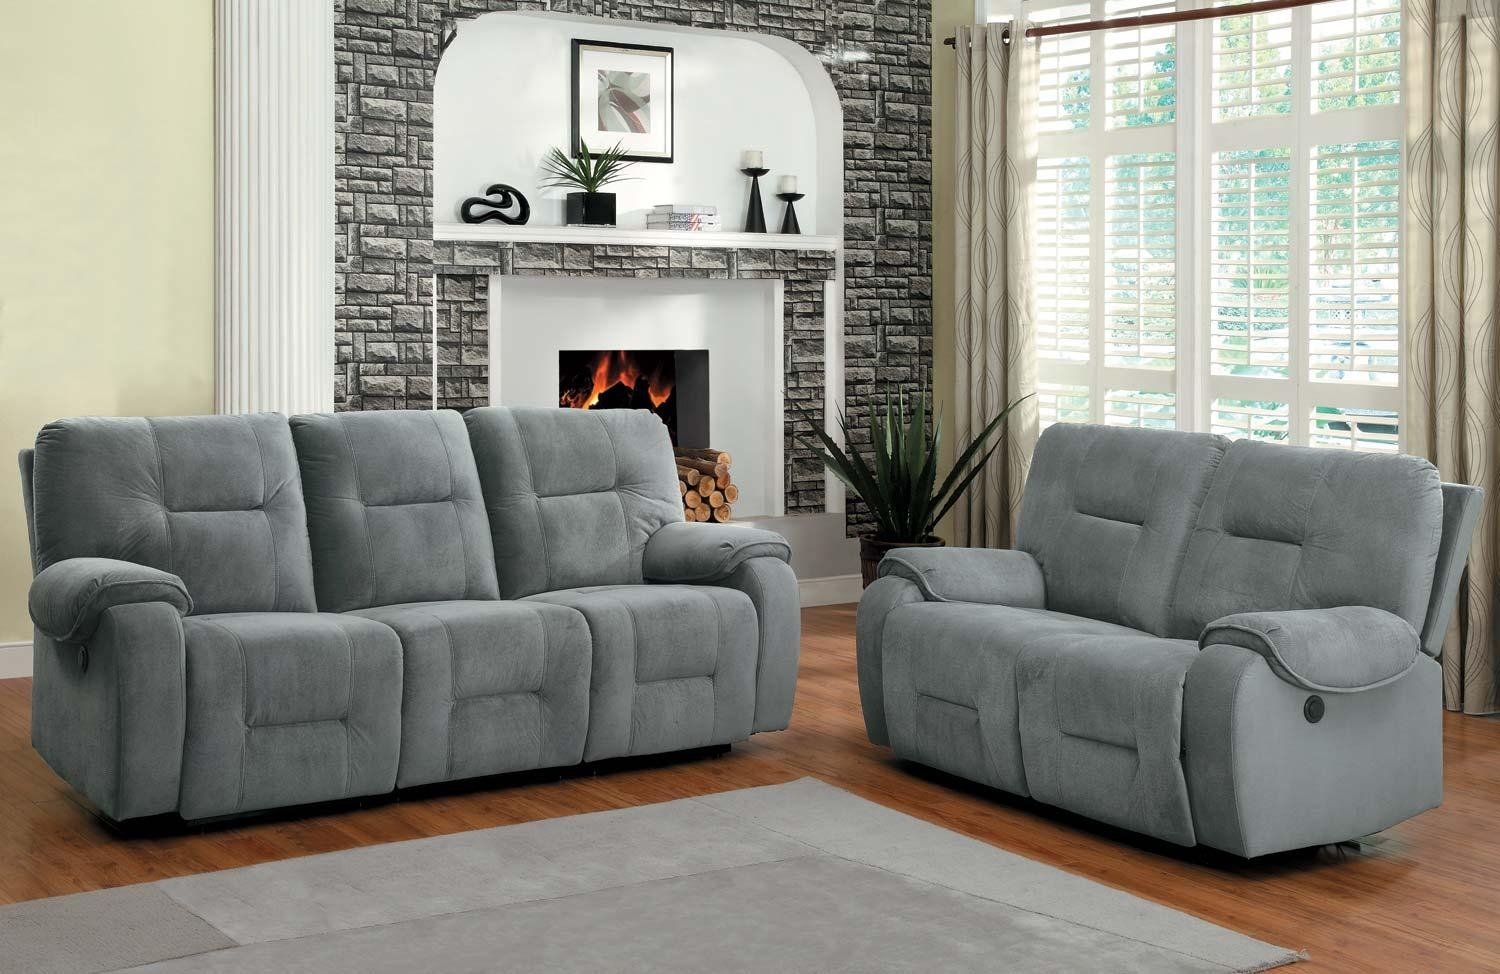 Blue Gray Sofa Bari Snuggler Sofa Bed Malva Blue Grey – Gallery Throughout Blue Gray Sofas (View 6 of 20)